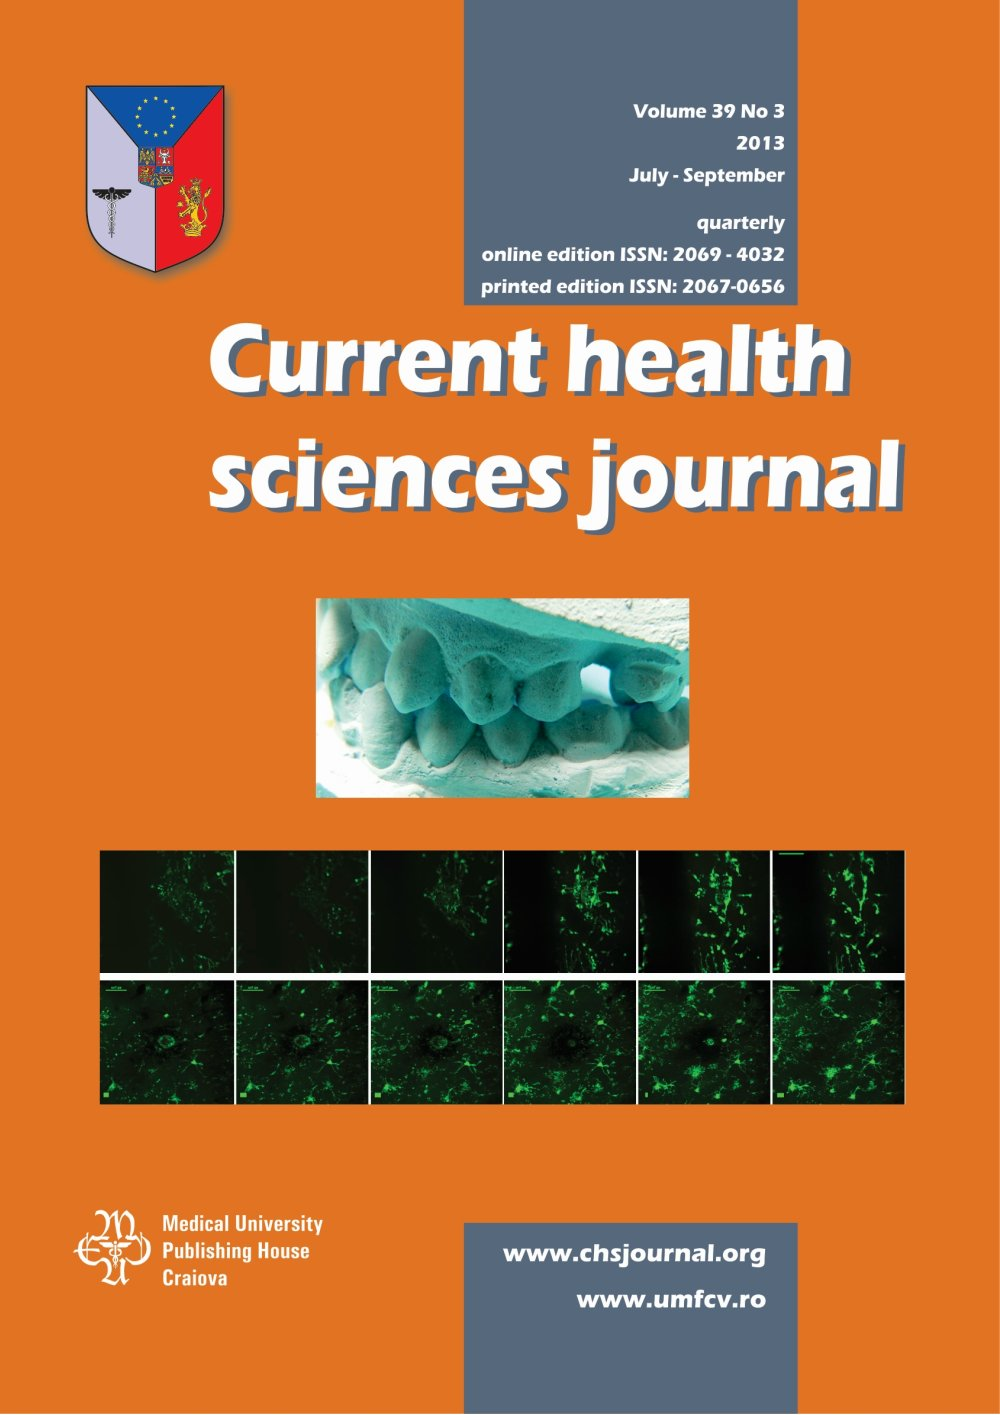 Current Health Sciences Journal, vol. 39 no. 3, 2013